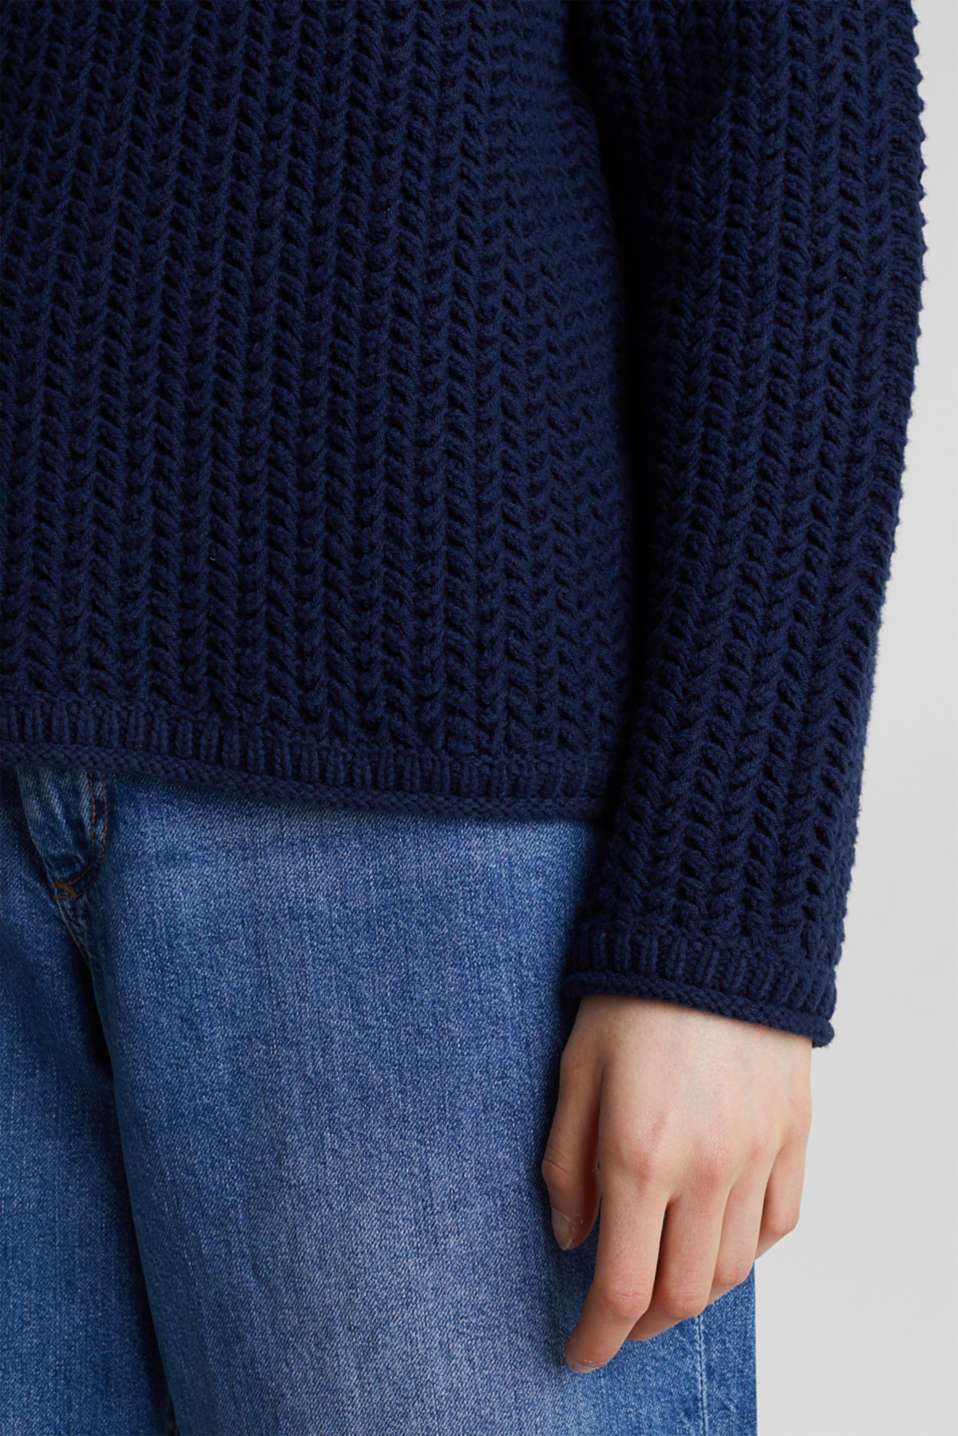 Boxy chunky knit jumper, DARK BLUE 2, detail image number 2